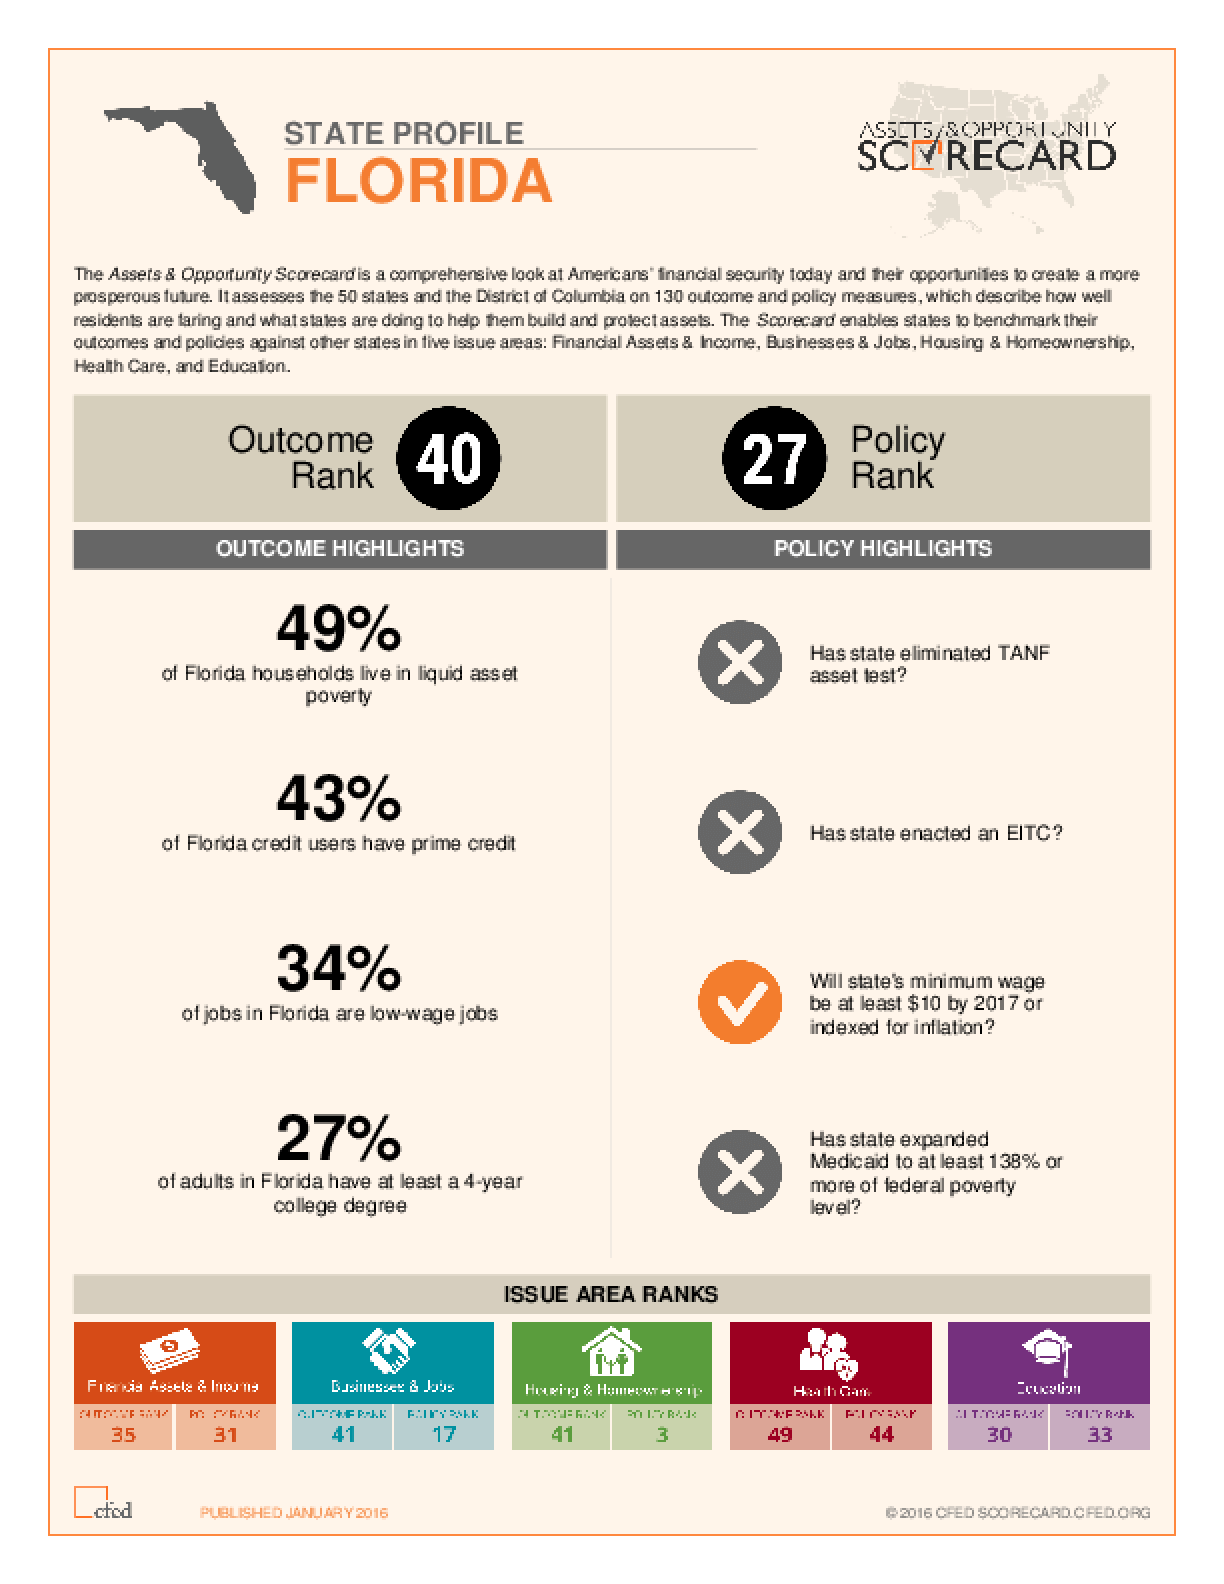 State Profile Florida: Assets and Opportunity Scorecard